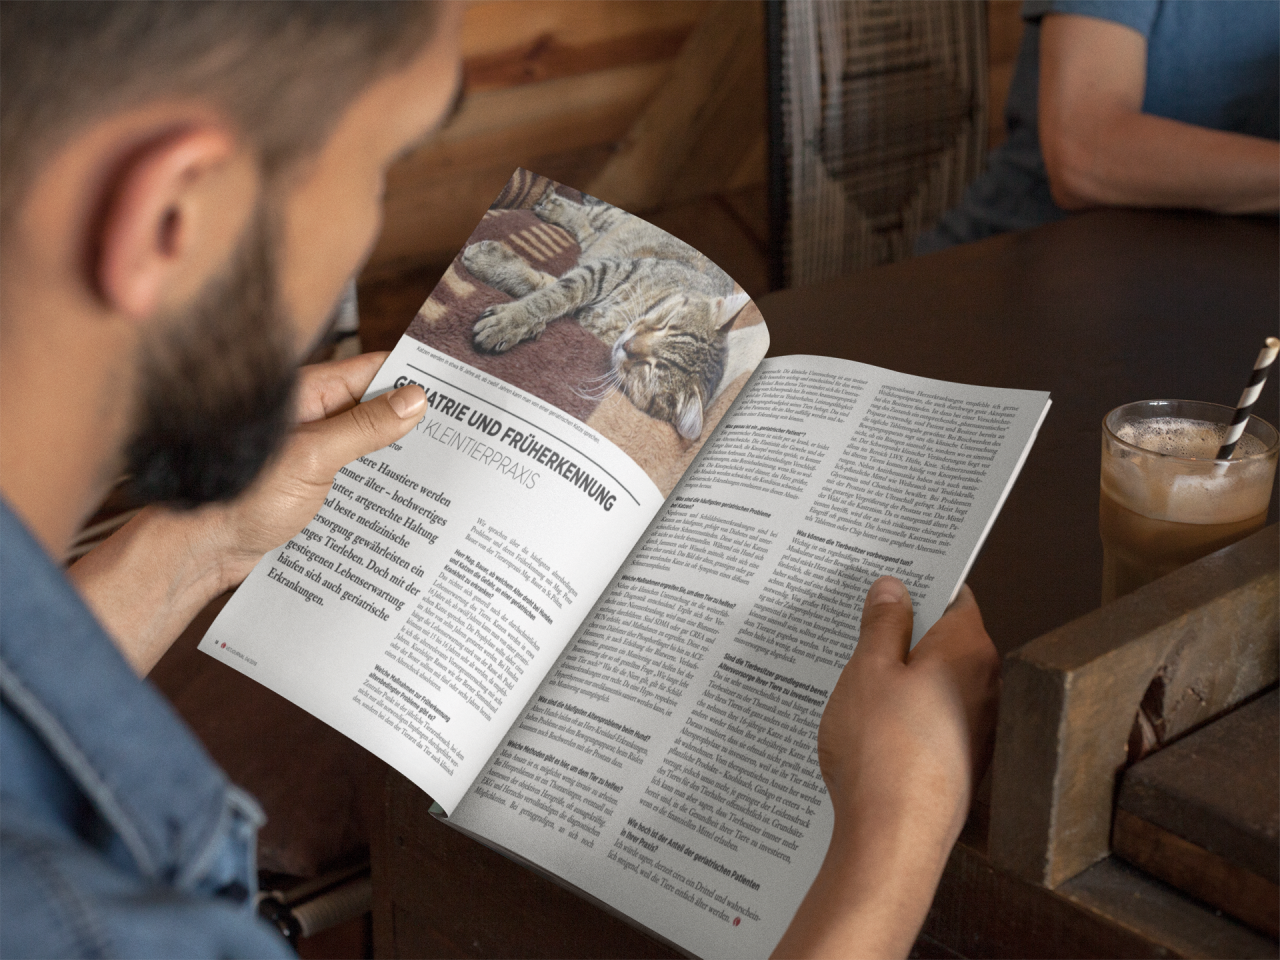 latino-model-at-a-coffee-shop-reading-a-magazine-template-a14447